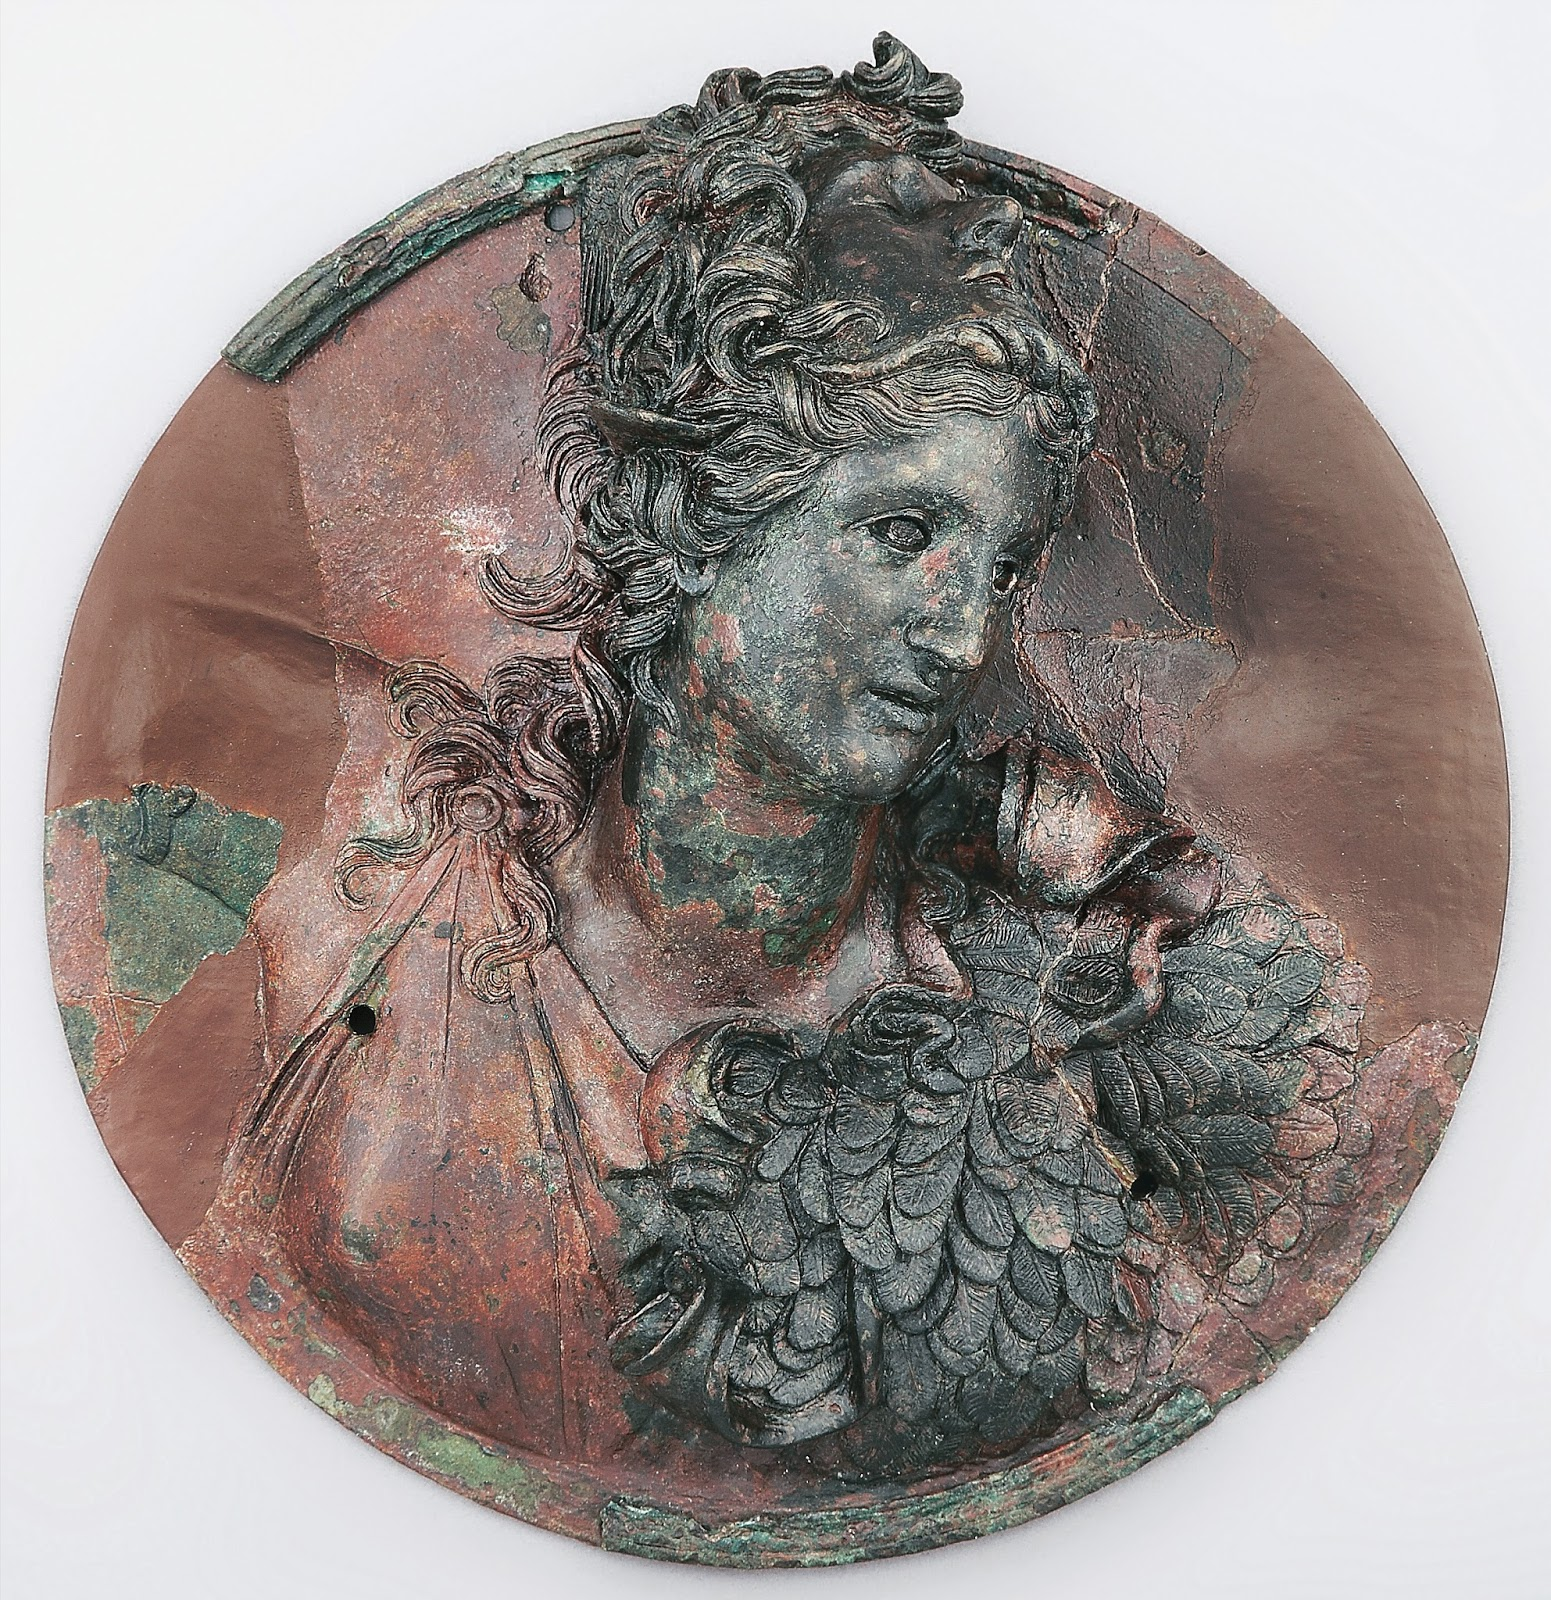 hellenistic world In the hellenistic period certain greek temples and cities came to be declared sacred and inviolable asylia was the practice of declaring religious places precincts of asylum, meaning they were immune to violence and civil authority.